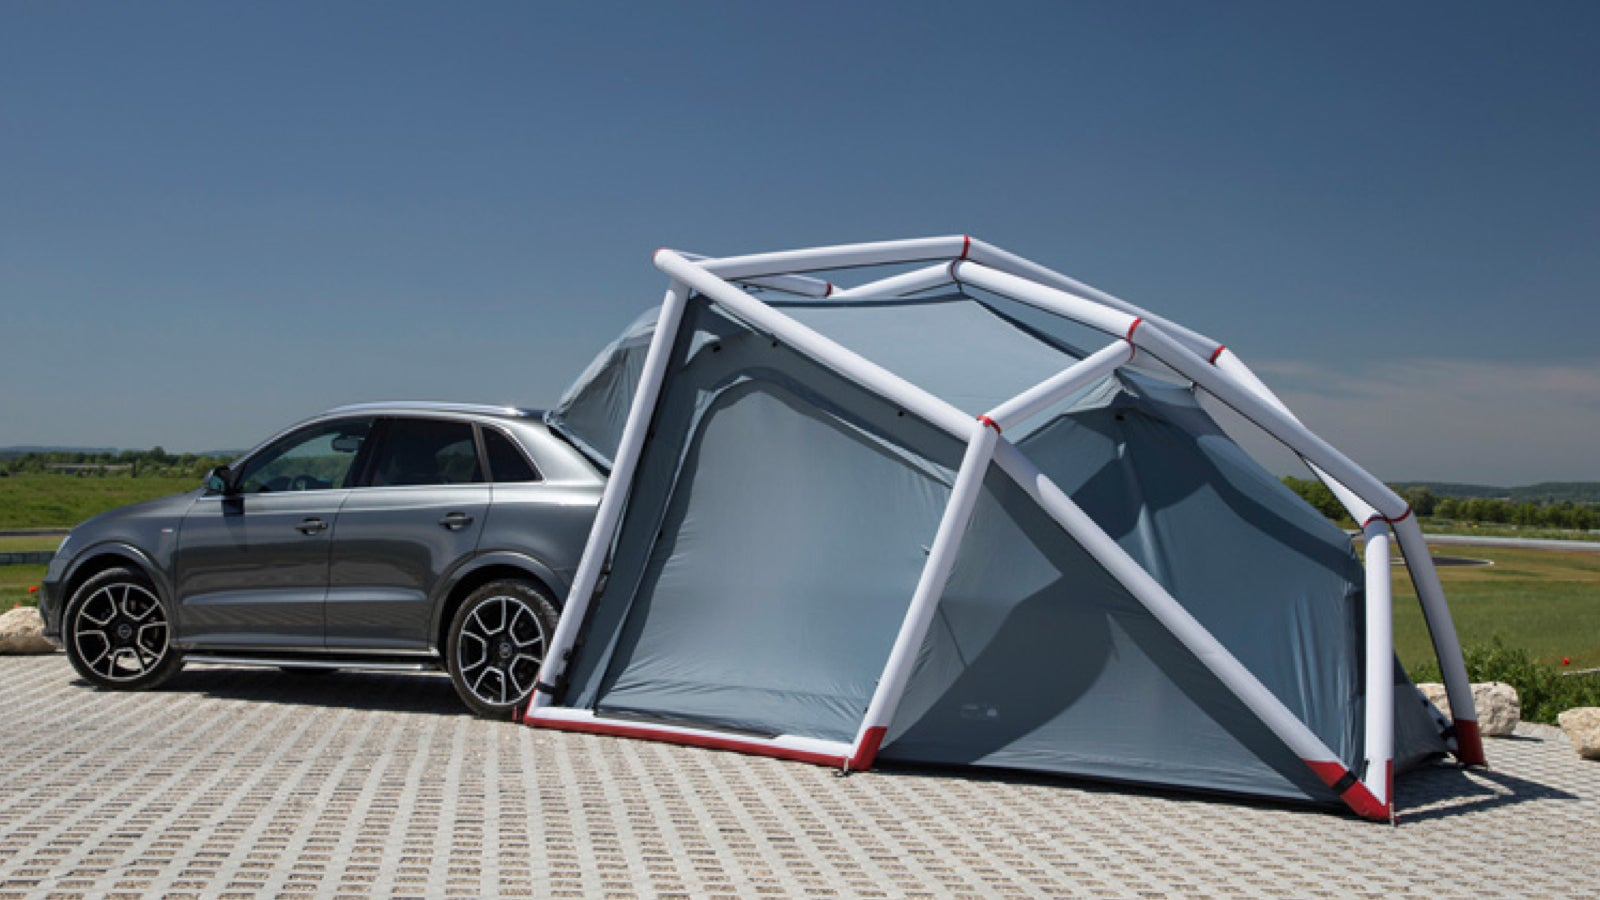 Audi has teamed up with outdoor company heimplanet to build an rough-weather-ready geodesic retractable tent for the Q3 SUV. Iu0027m not sure how deep into the ... & A Tent For Your Tiny Crossover